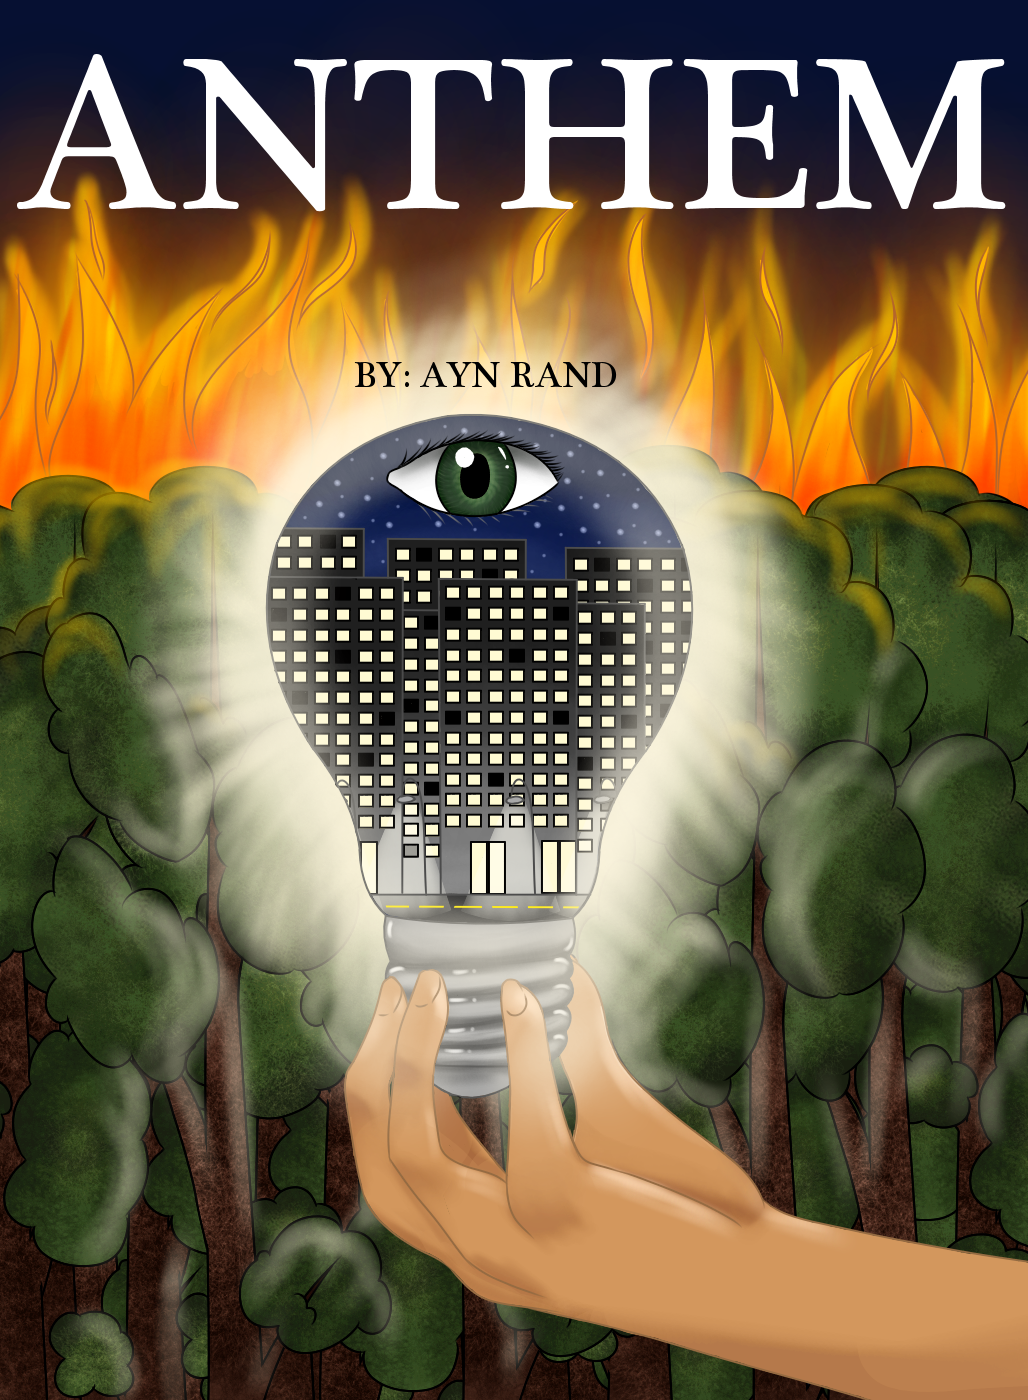 Anthem By Ayn Rand Cover Finale By Crystalcat23 On Deviantart